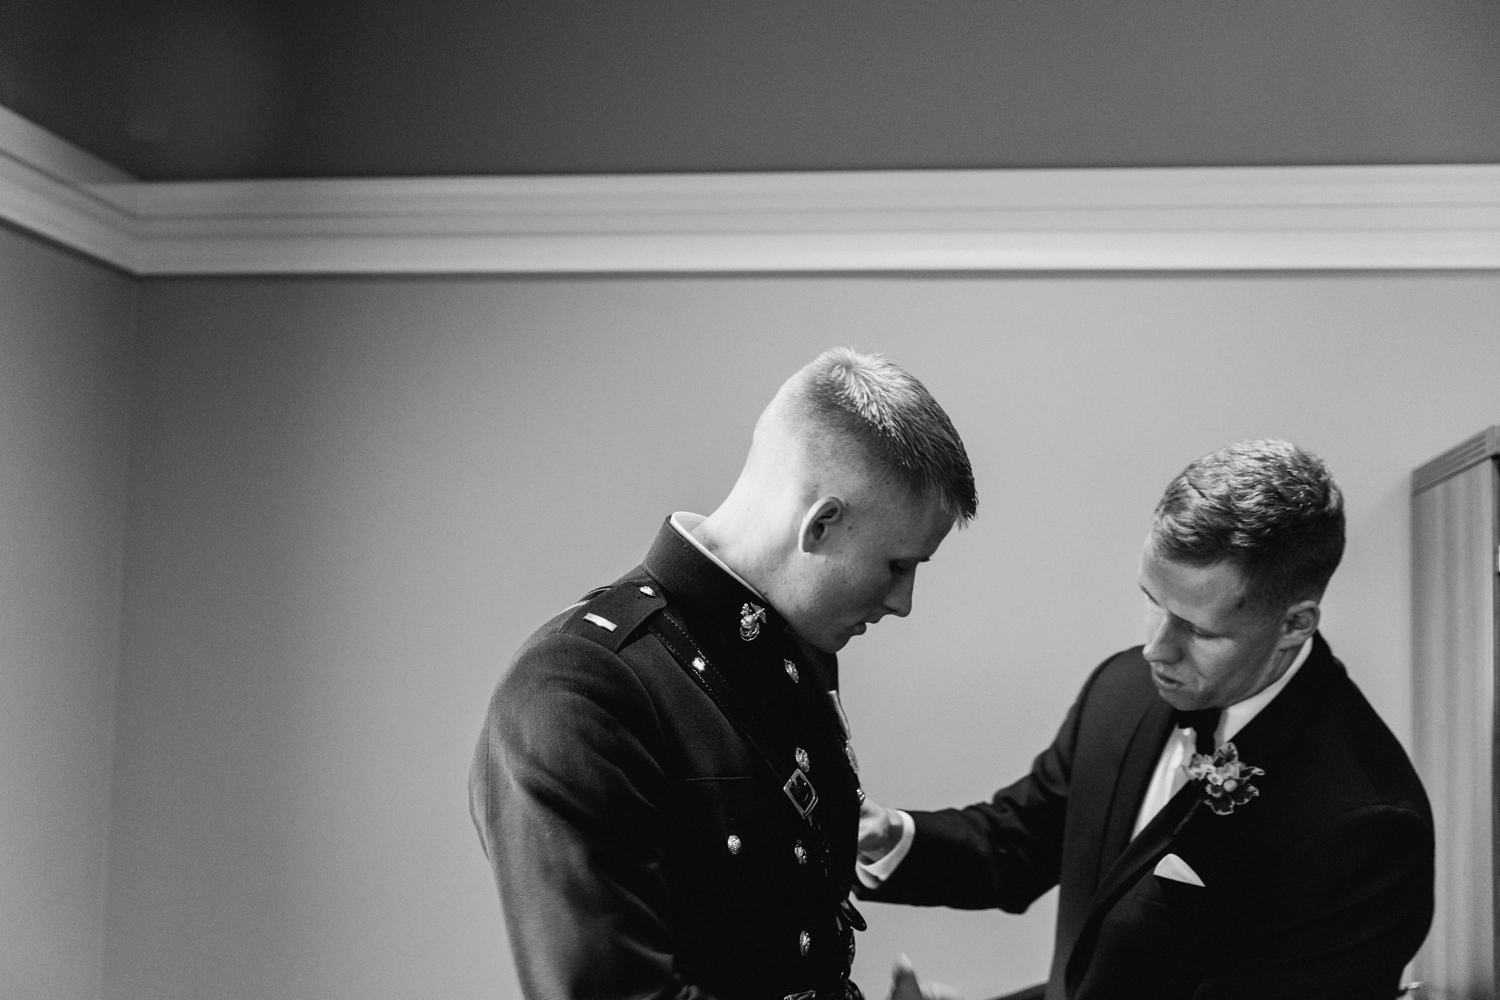 Wedding-at-The-Savannah-Center-West-Chester-Ohio-Photography-Chloe-Luka-Photography_7359.jpg